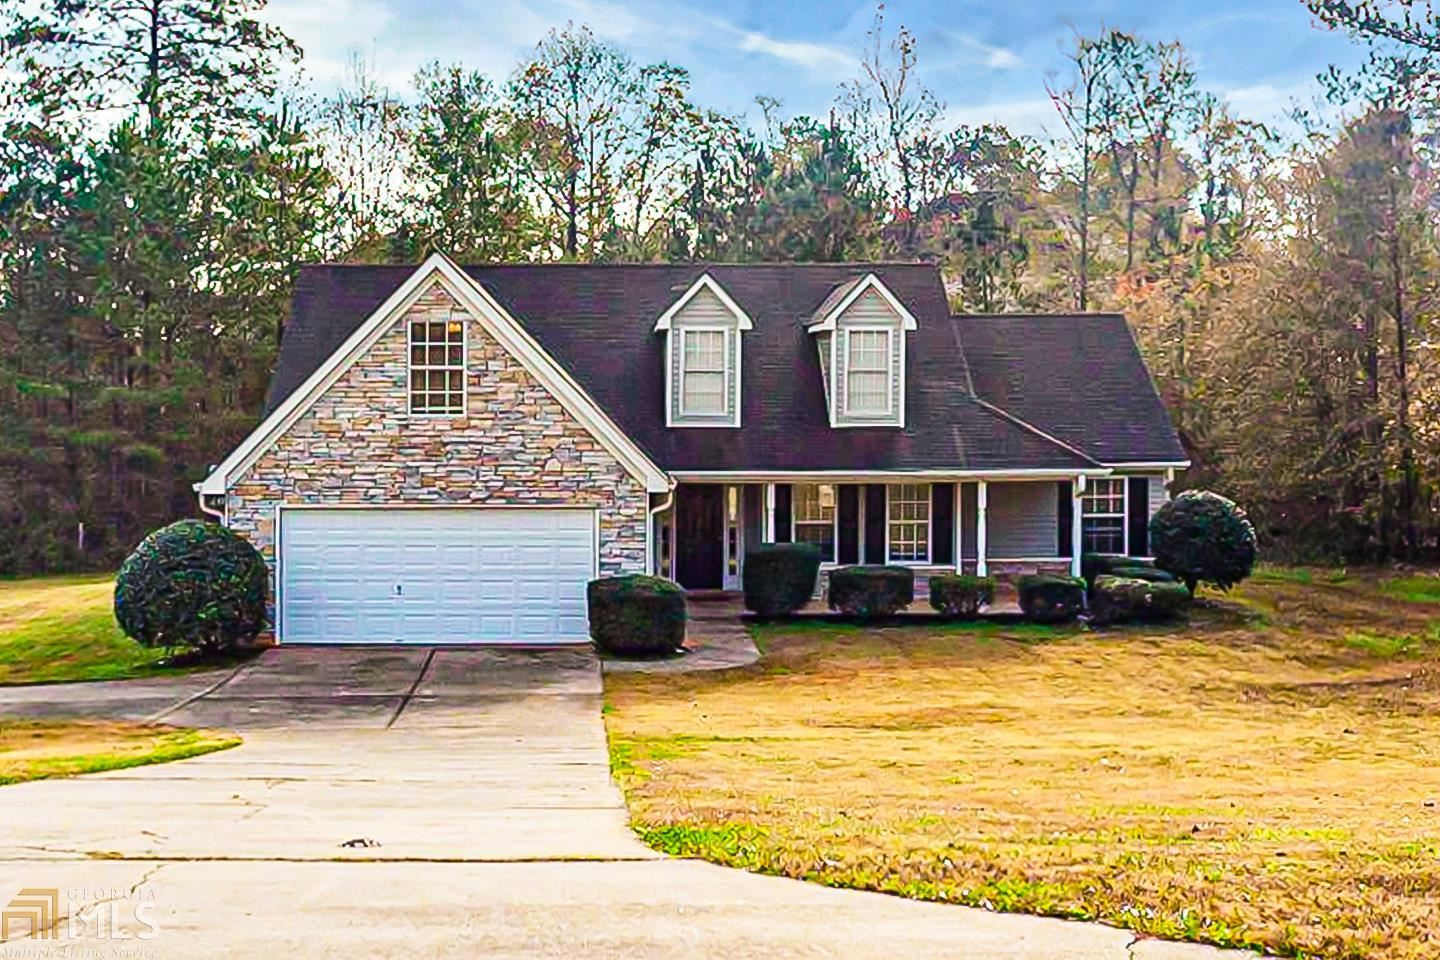 760 Wynn, McDonough, GA 30252 - MLS#: 8900046